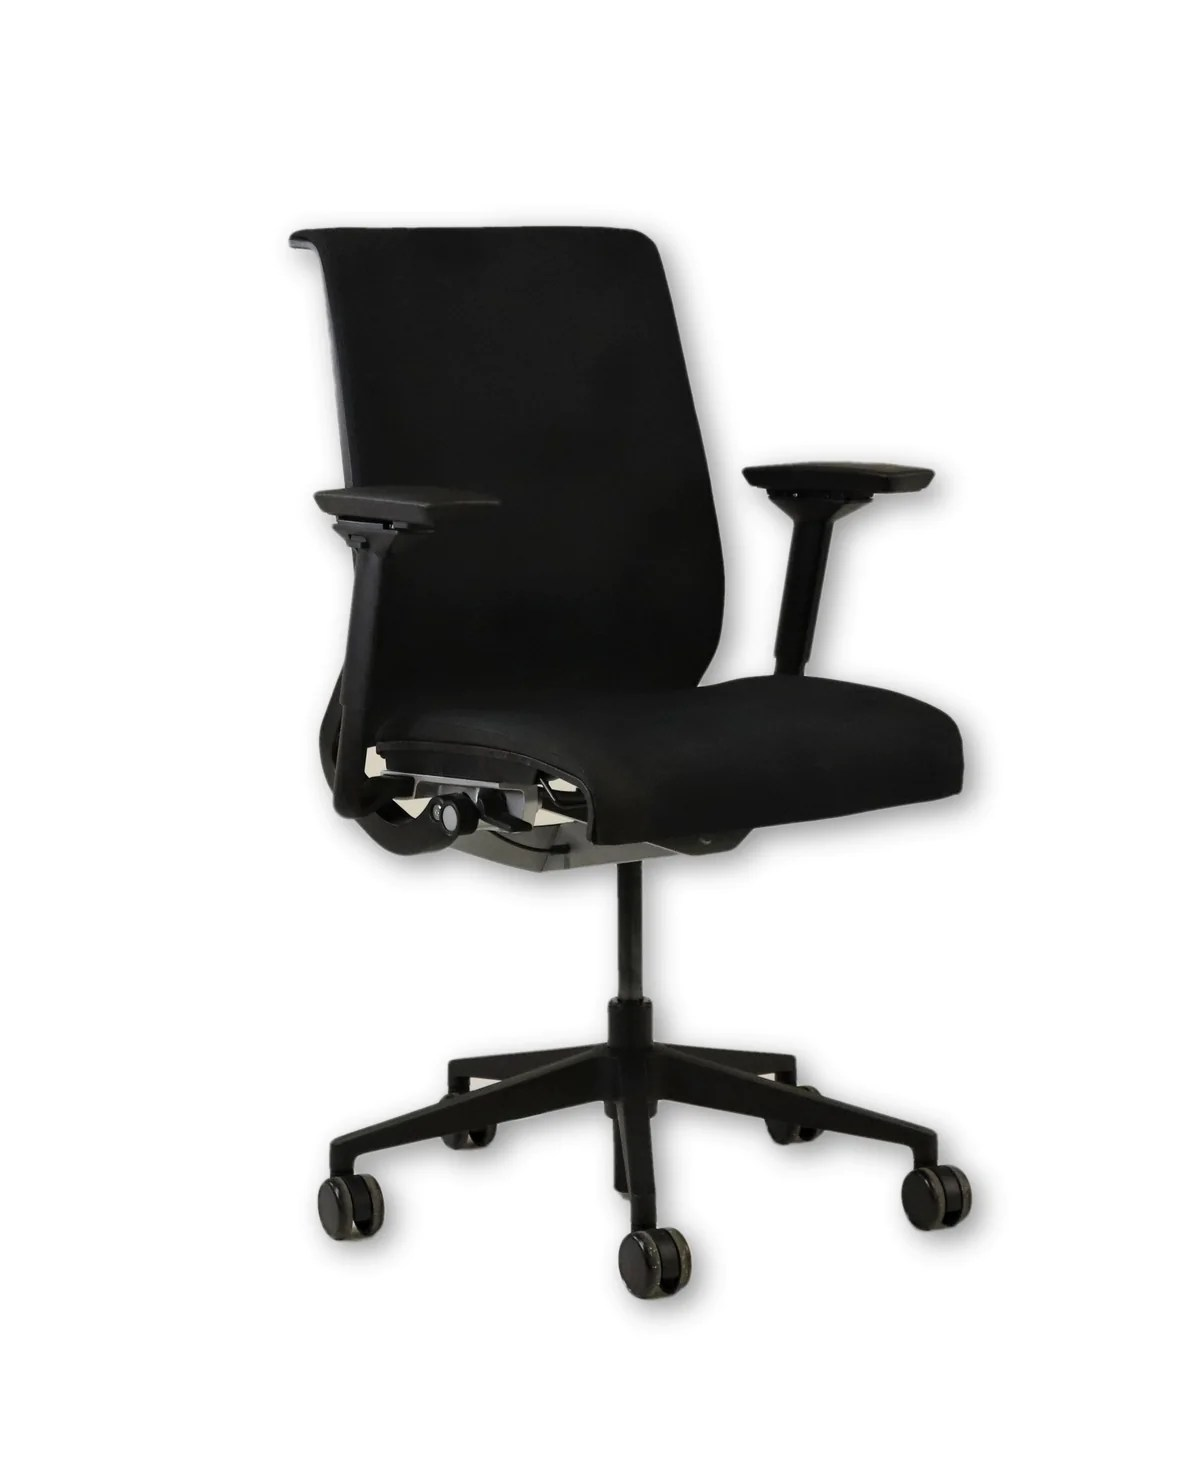 Steelcase Think Chair Steelcase Think Chair In Original Black Fabric 4d Arms